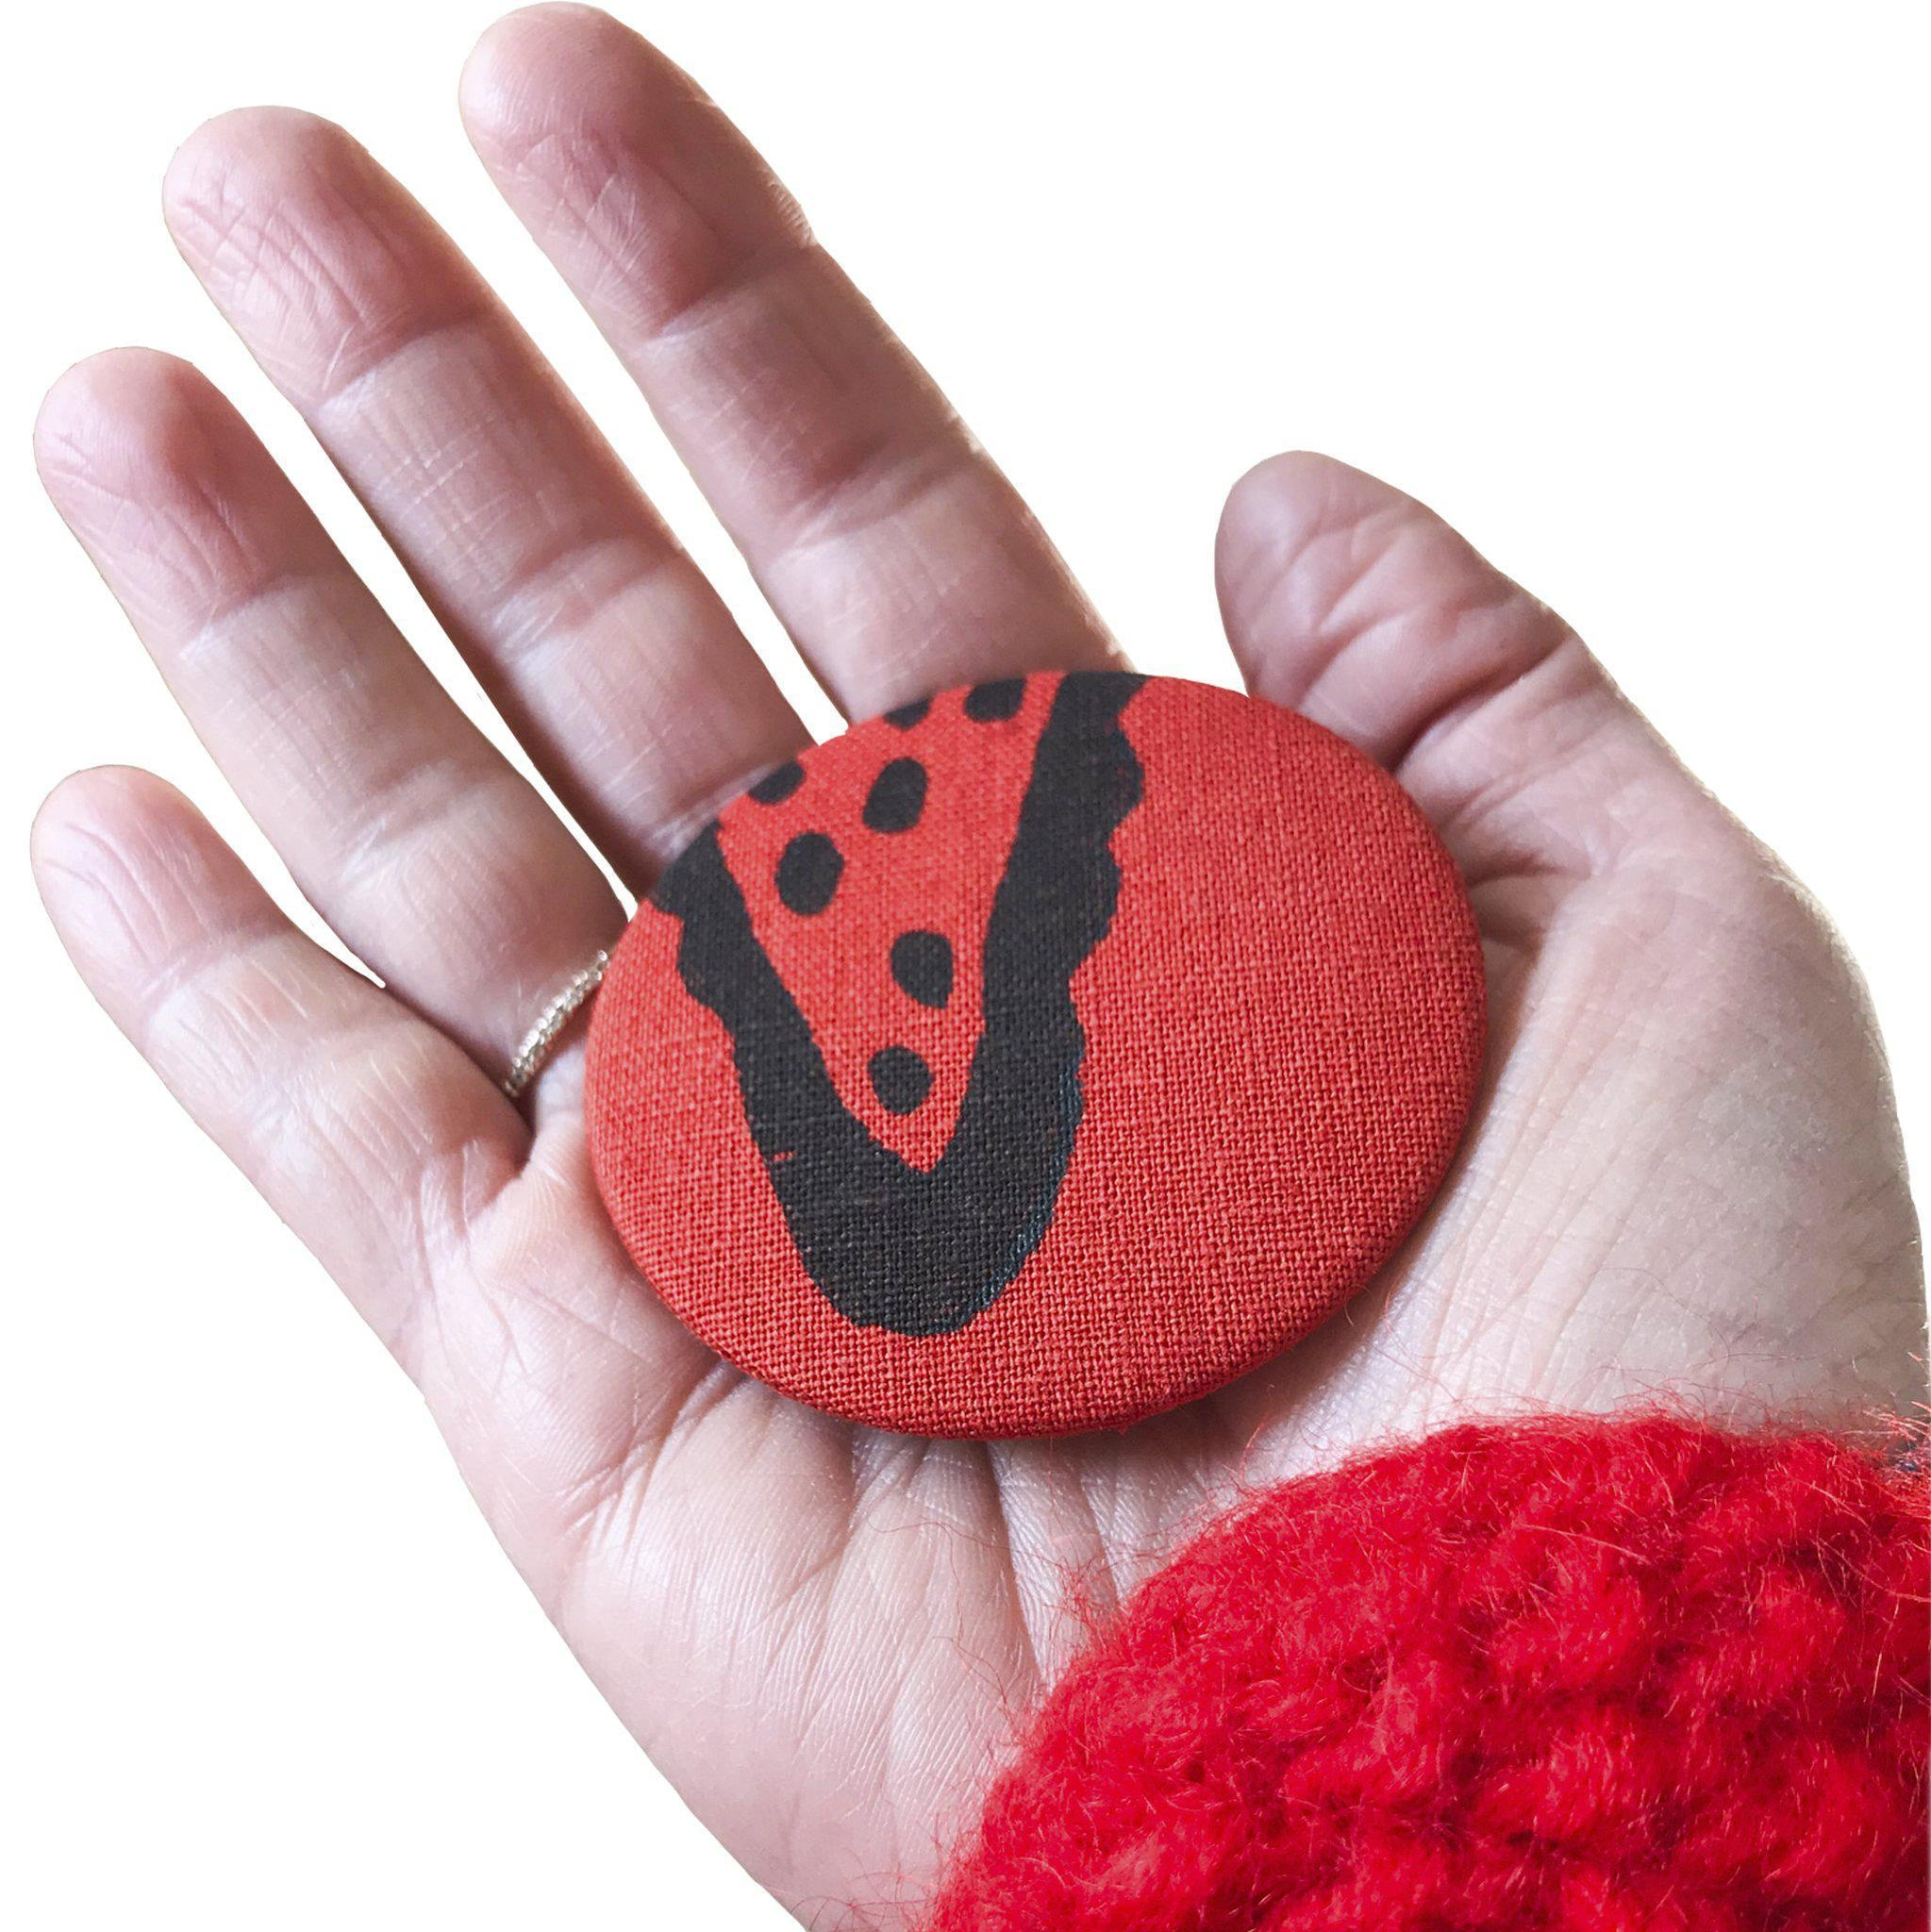 A hand holding a red 'Corn' magnet, bottle opener - Devrim Studio